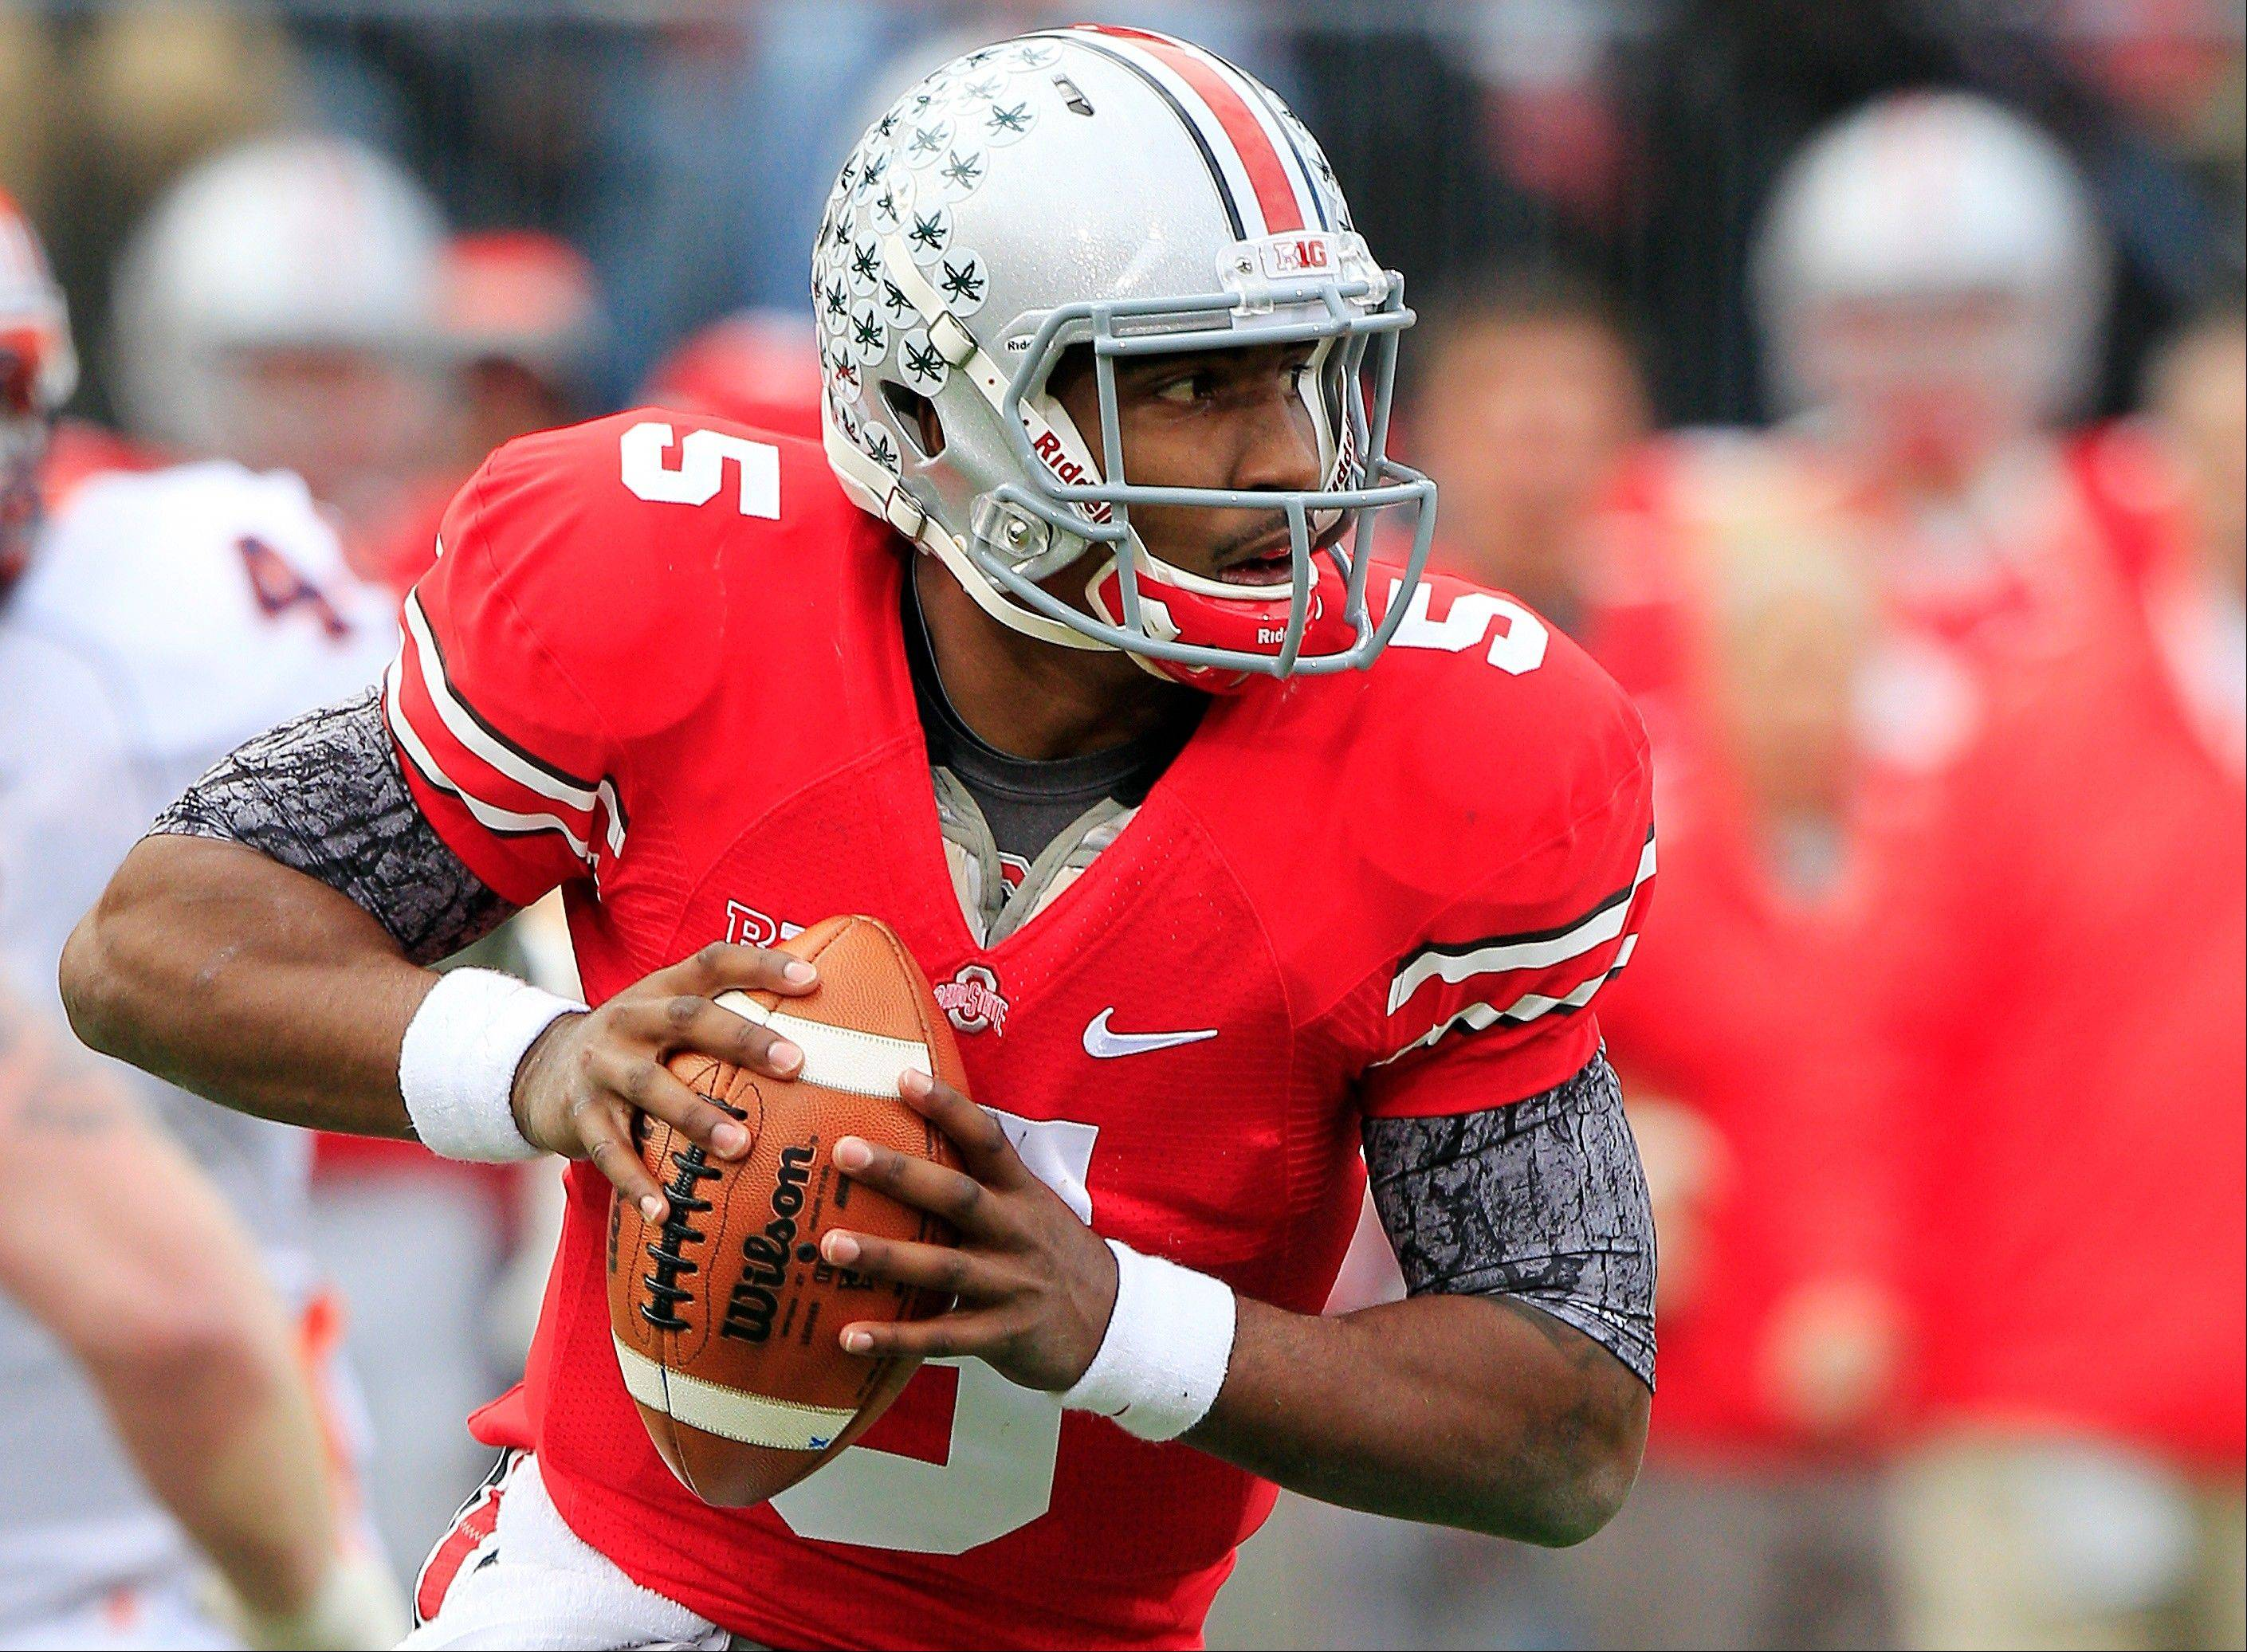 This is a critical time for Ohio State's Braxton Miller, and he knows it. The junior quarterback of the No. 2 Buckeyes, who open on Saturday against Buffalo, is in position for a big season for both his team and himself.